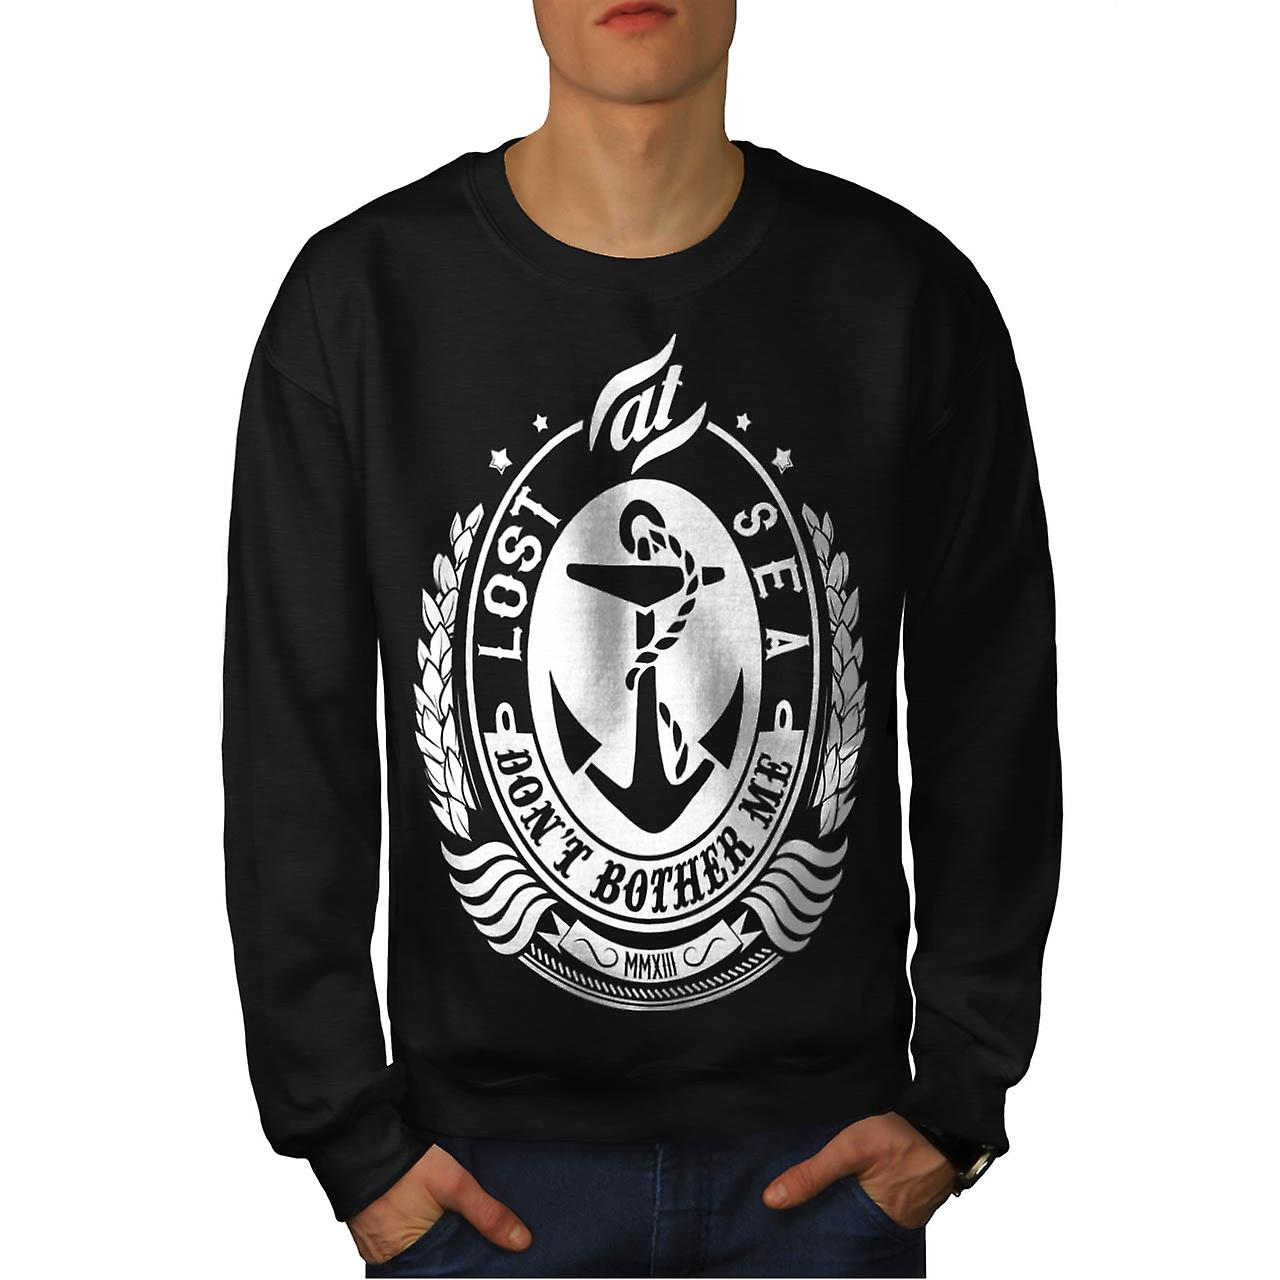 Lost At Sea Boat Ship Bother Me Men Black Sweatshirt | Wellcoda